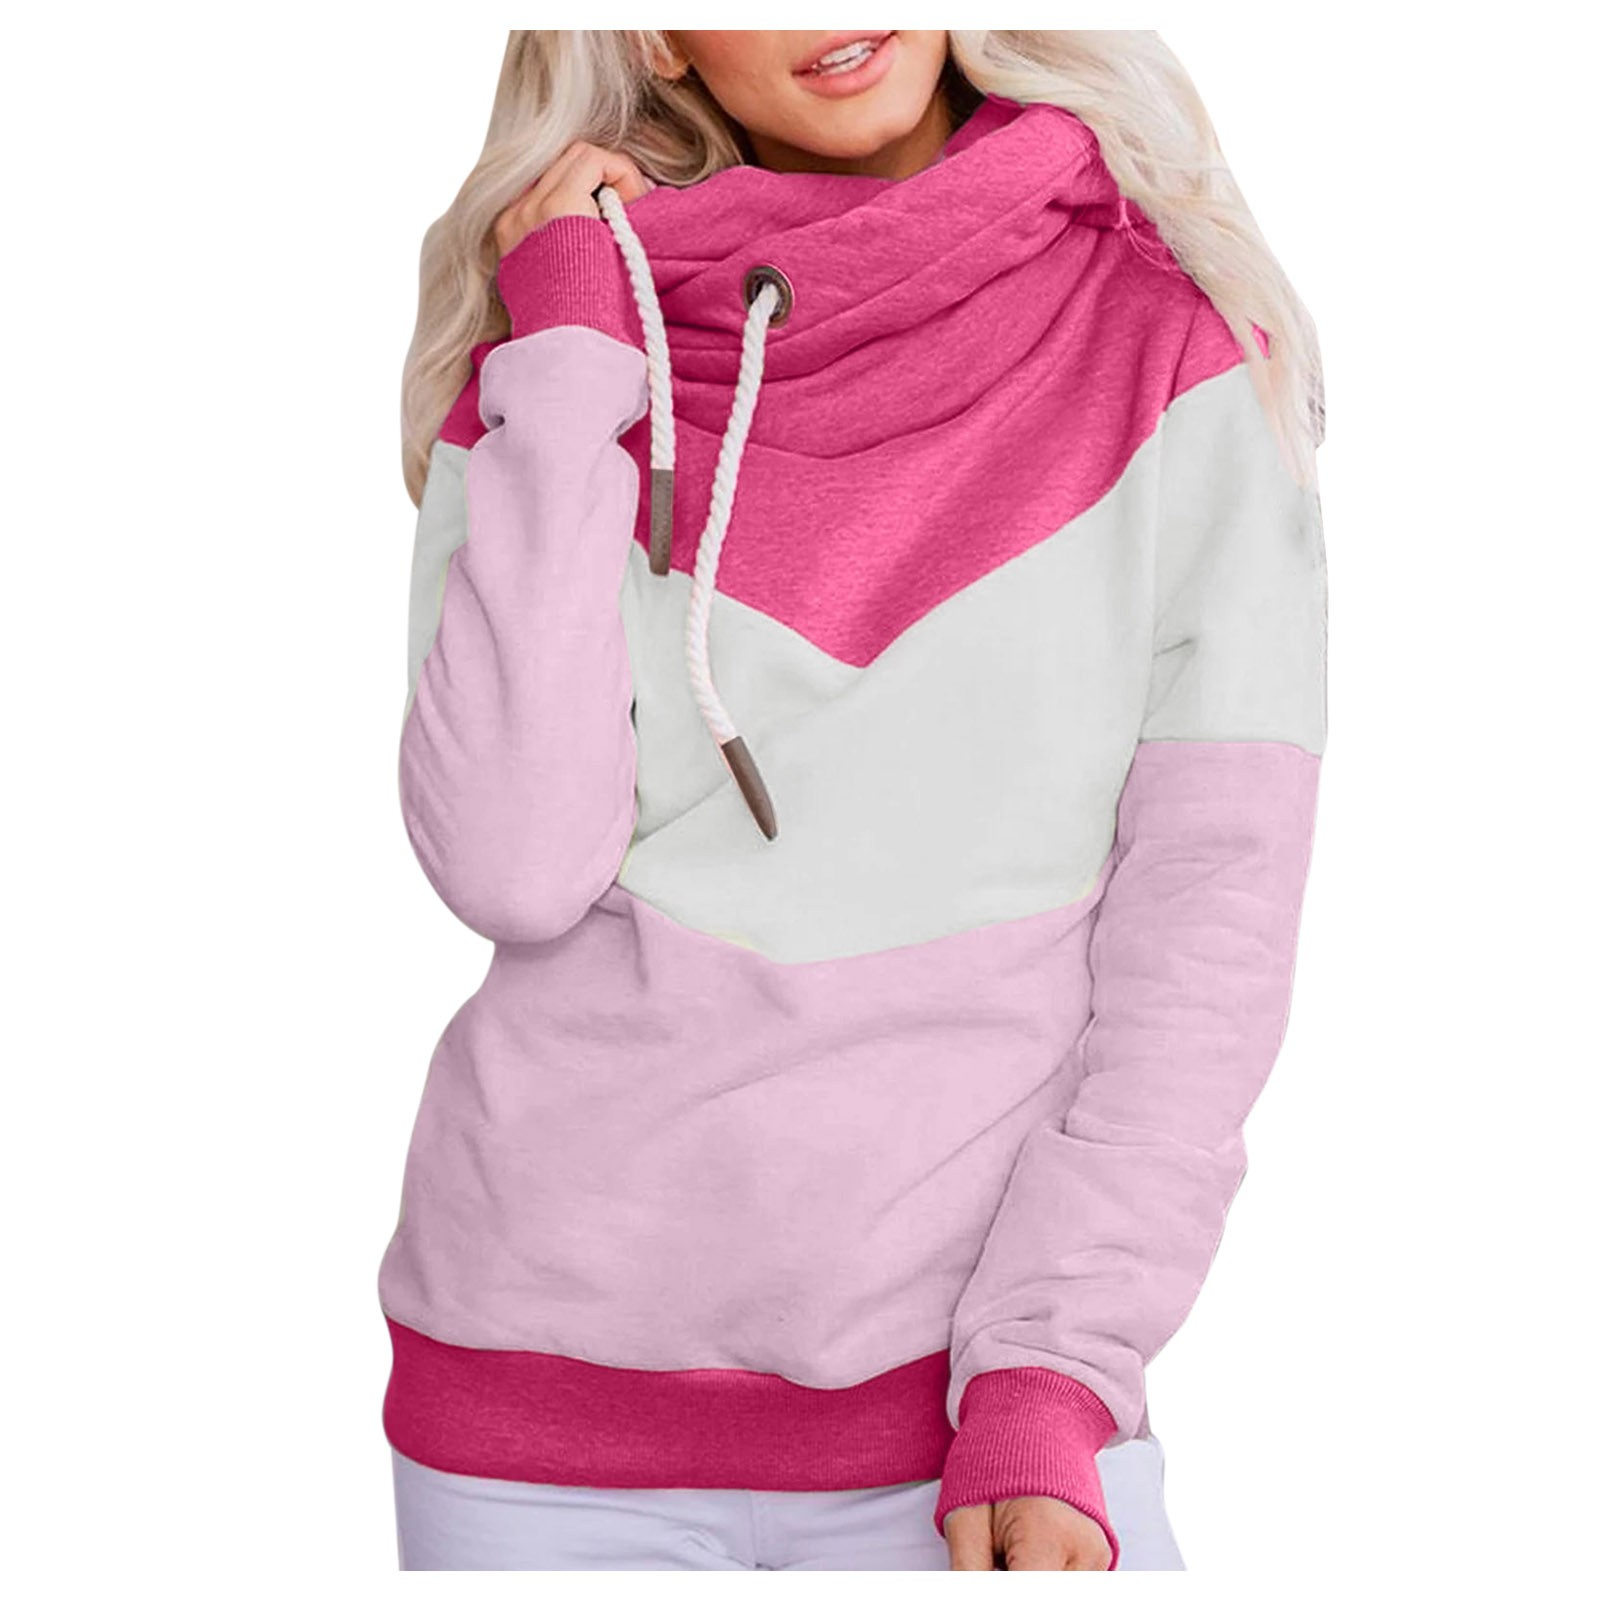 Hot Sale Women Casual Solid Contrast Long Sleeve Hoodie Sweatshirt Patchwork Printed Tops Sudaderas Mujer 2020 F Fast Ship 14